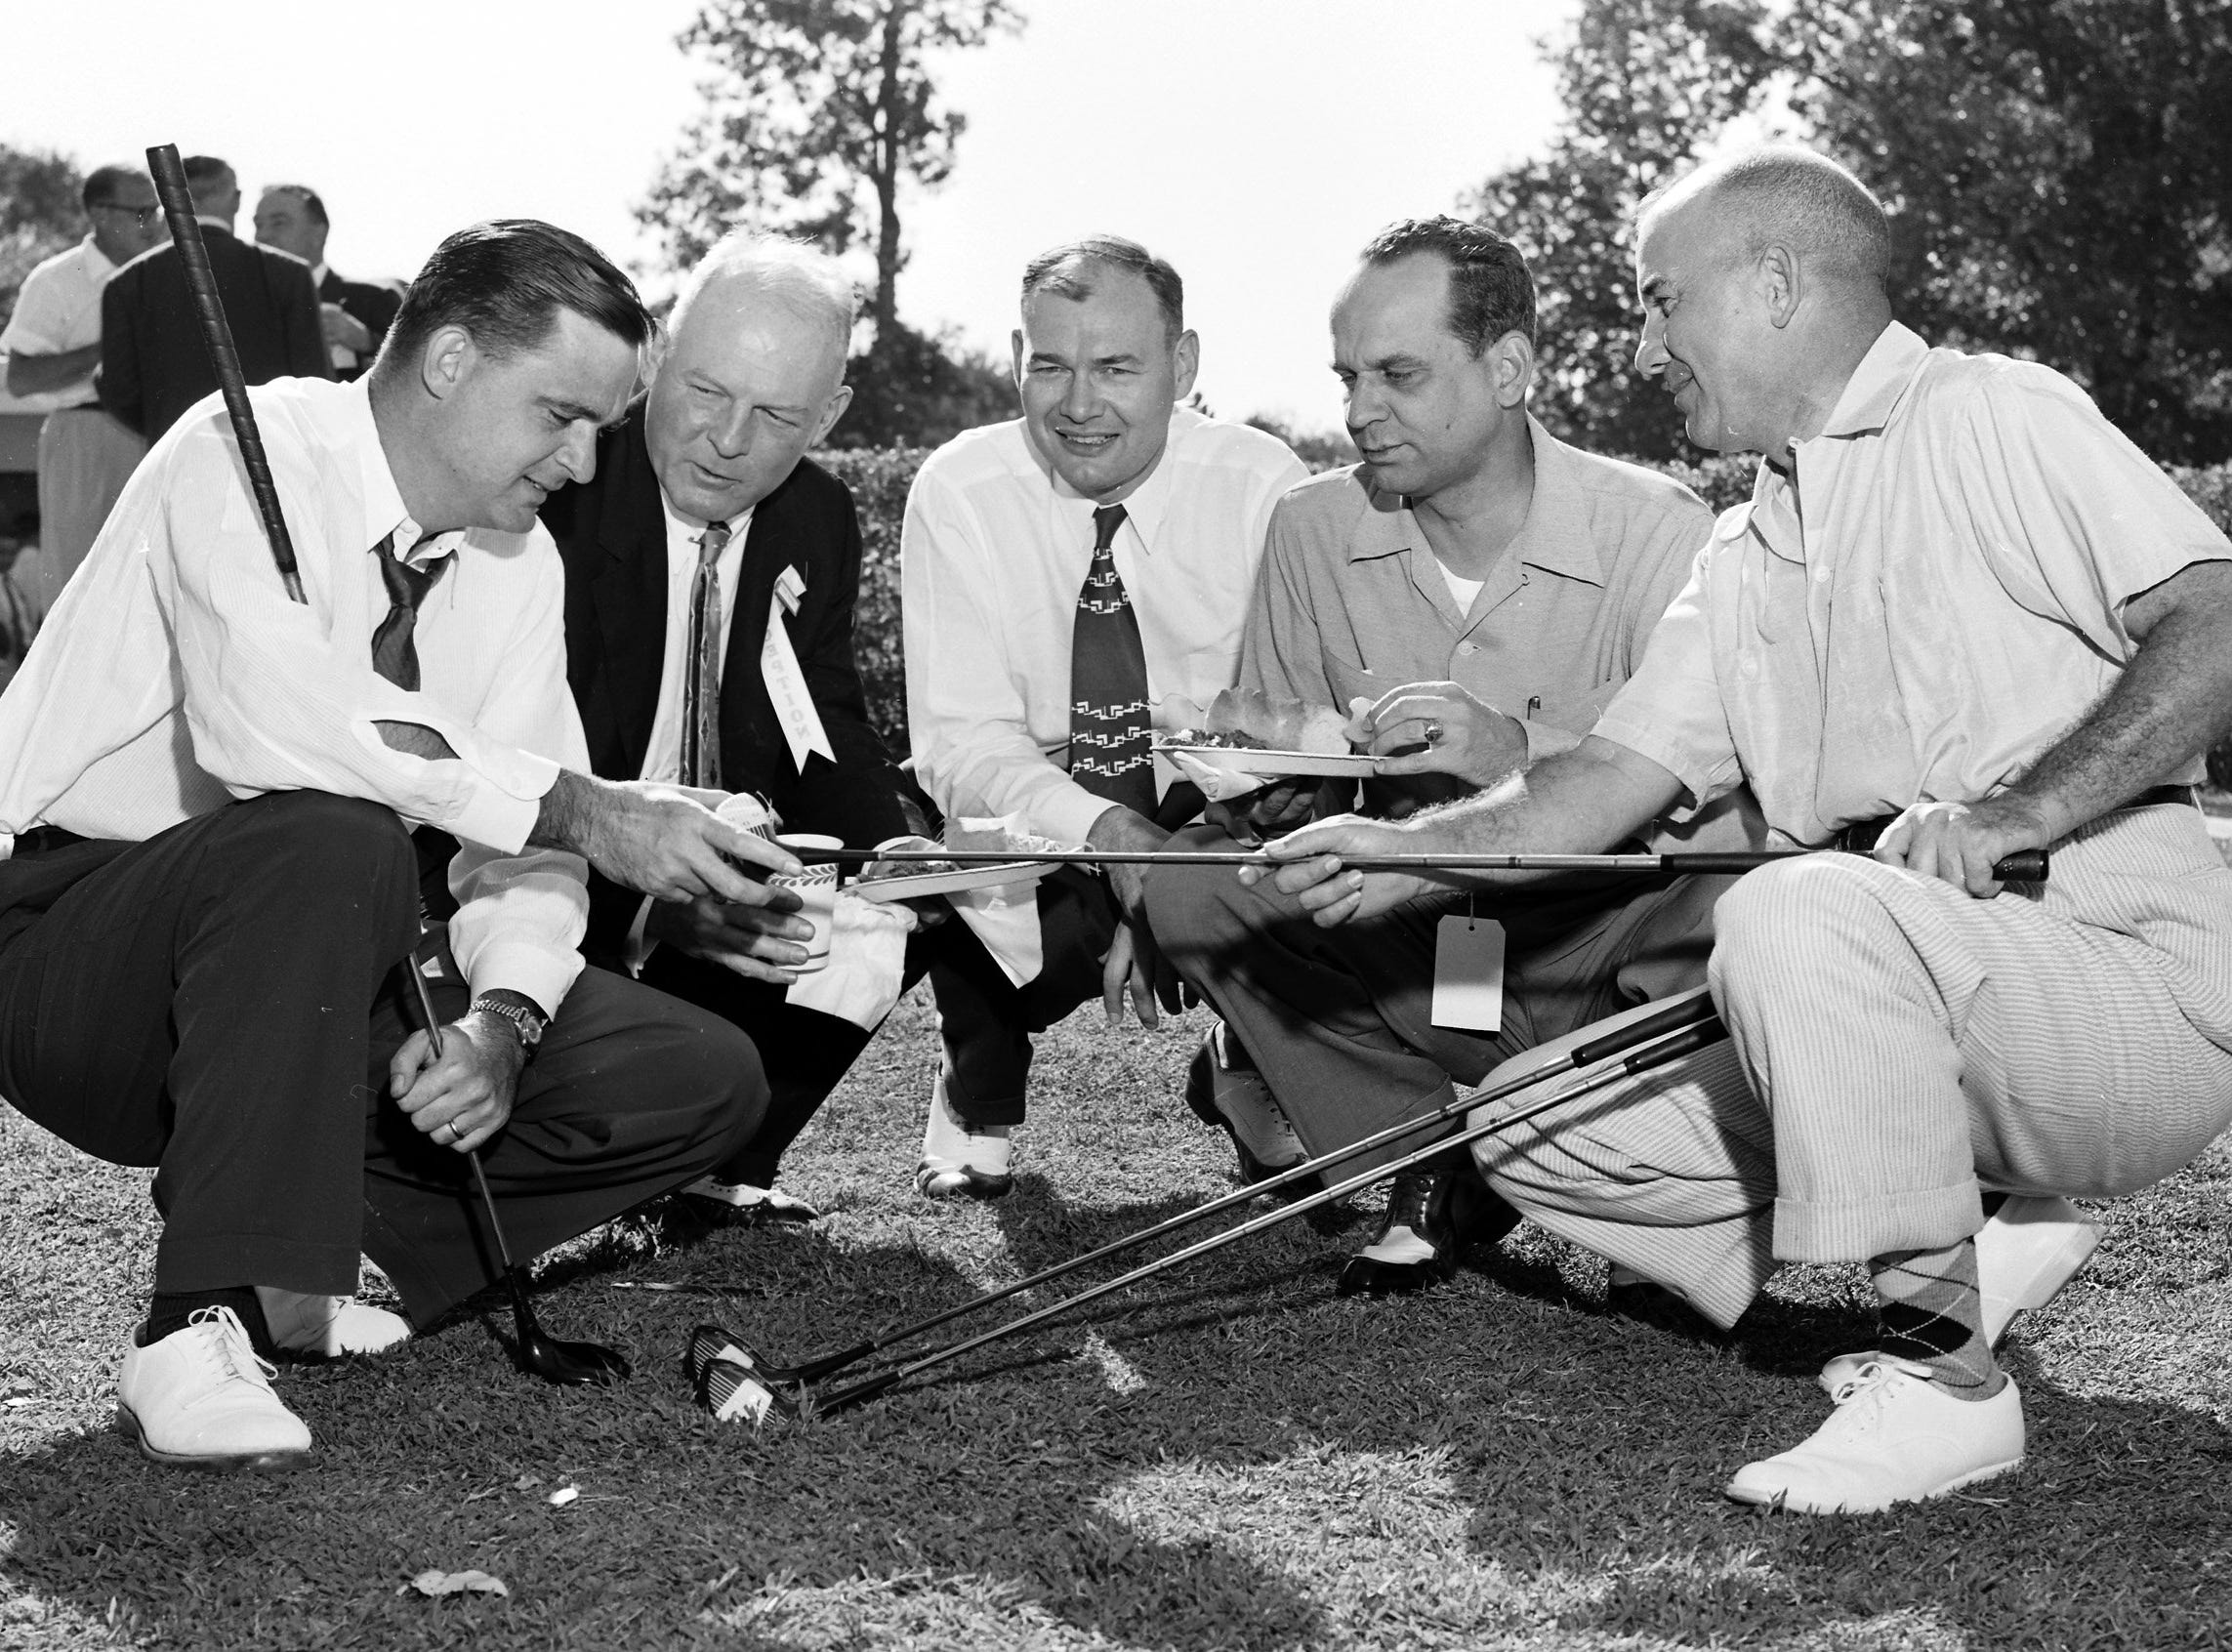 The talk was more golf than law when legal heads assembled at Chickasaw Country Club on 12 Sep 1955 for the annual Memphis and Shelby County Bar Association picnic.  Looking over new clubs were (From Left) Jack Petree, Cooper Turner, George O. Benton of Jackson, TN, Ben Adams and Charles G. Black.